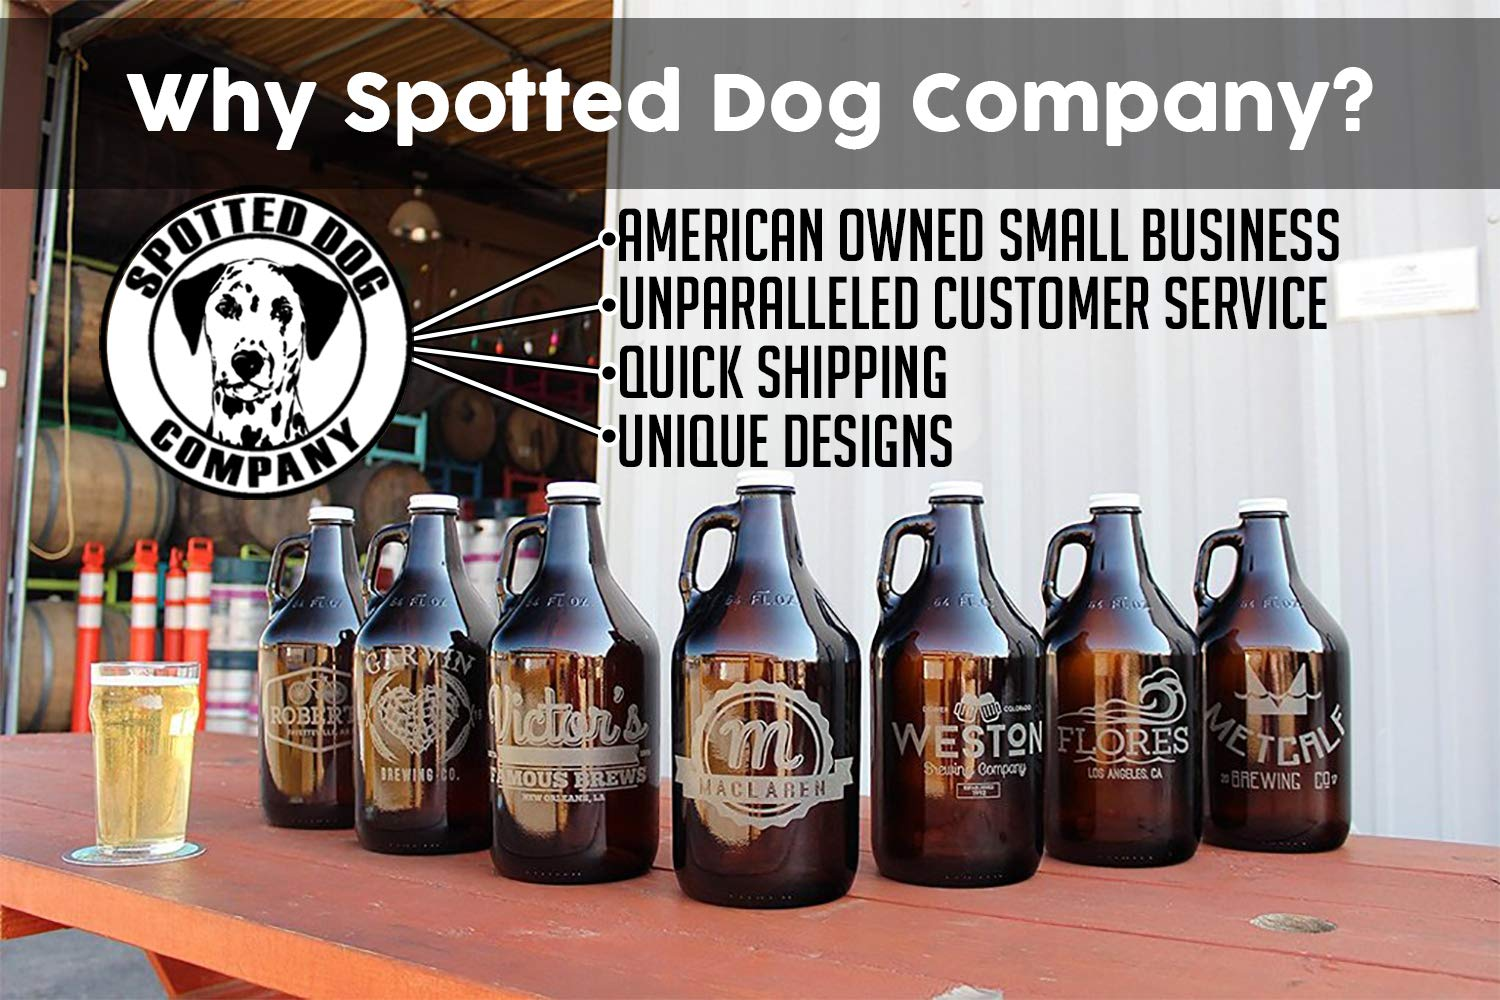 Personalized Etched 64oz Insulated Stainless Growler Groomsmen Gifts by Spotted Dog Company (Image #3)